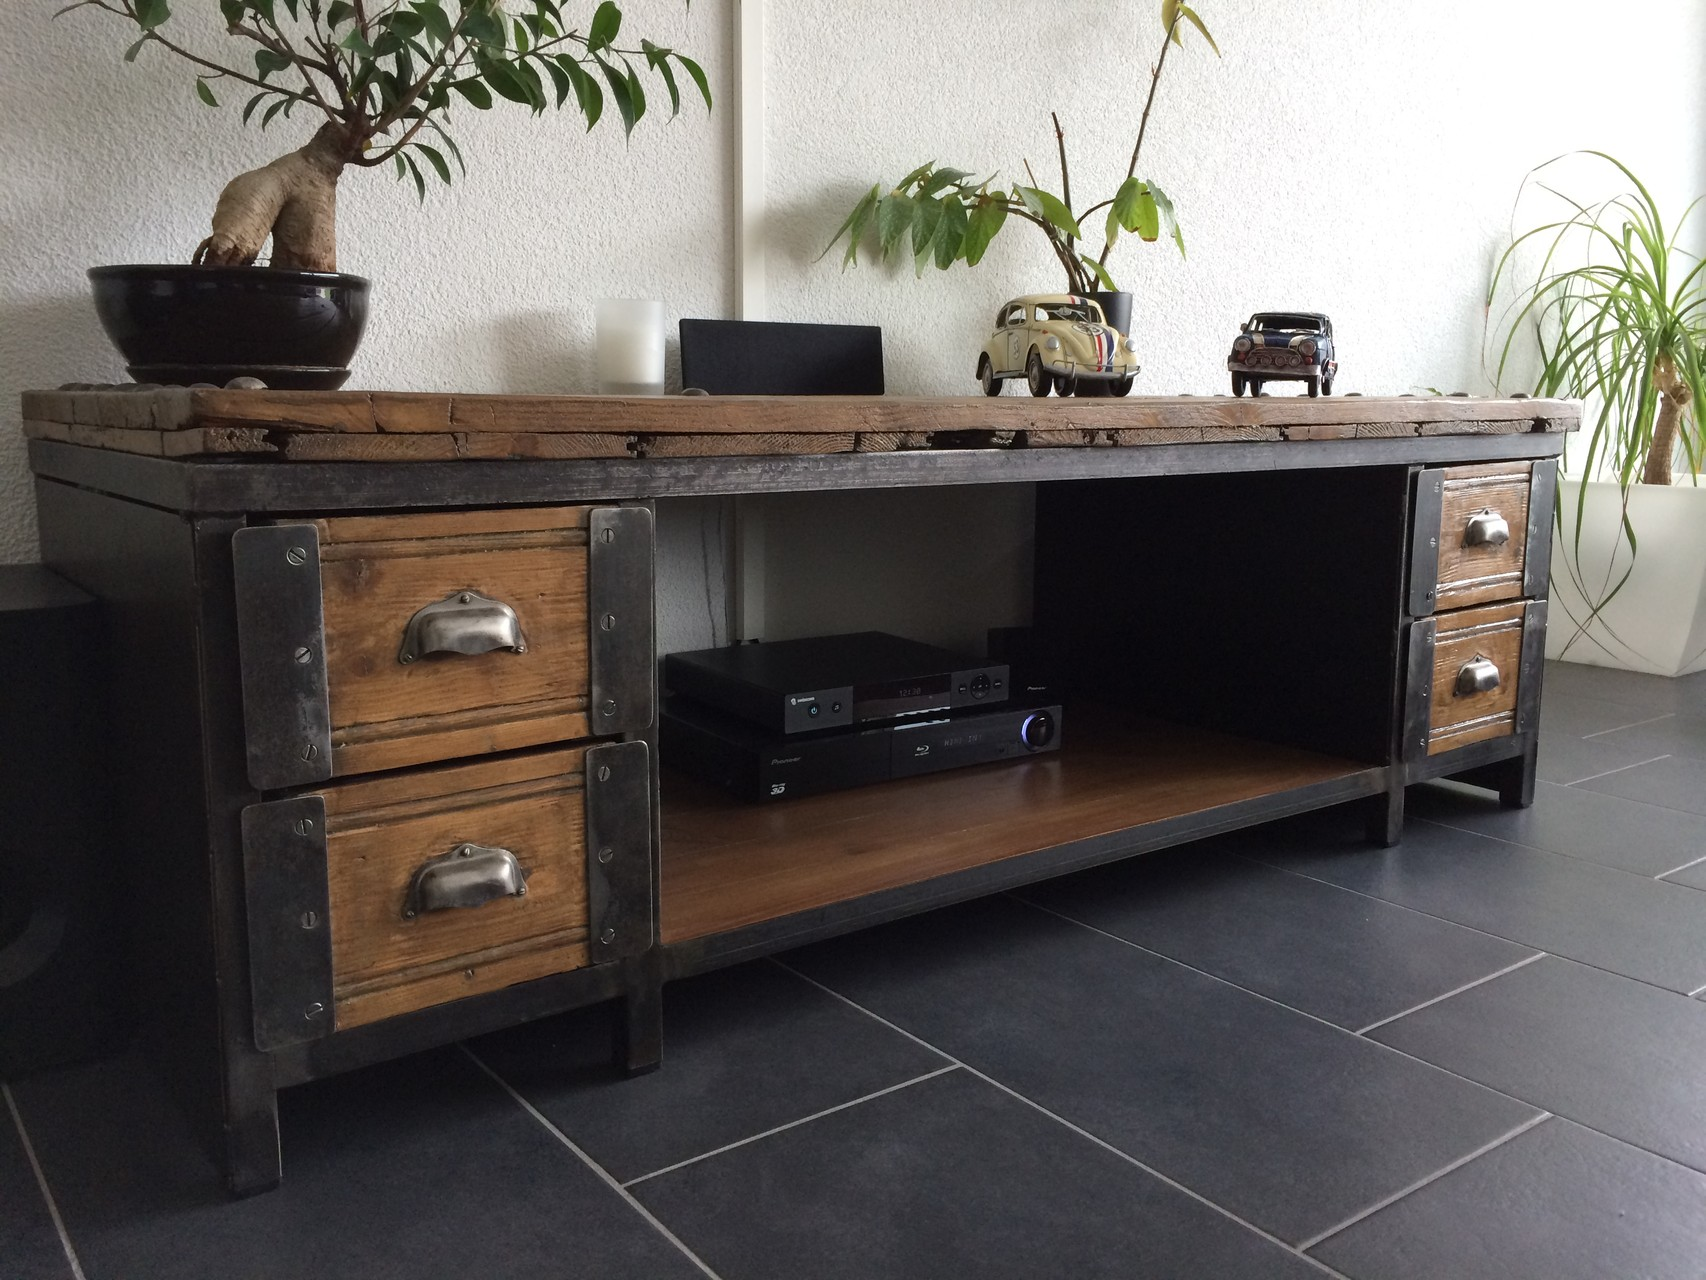 Table basse meuble tv industriel atelier vintage for Meuble tv industriel